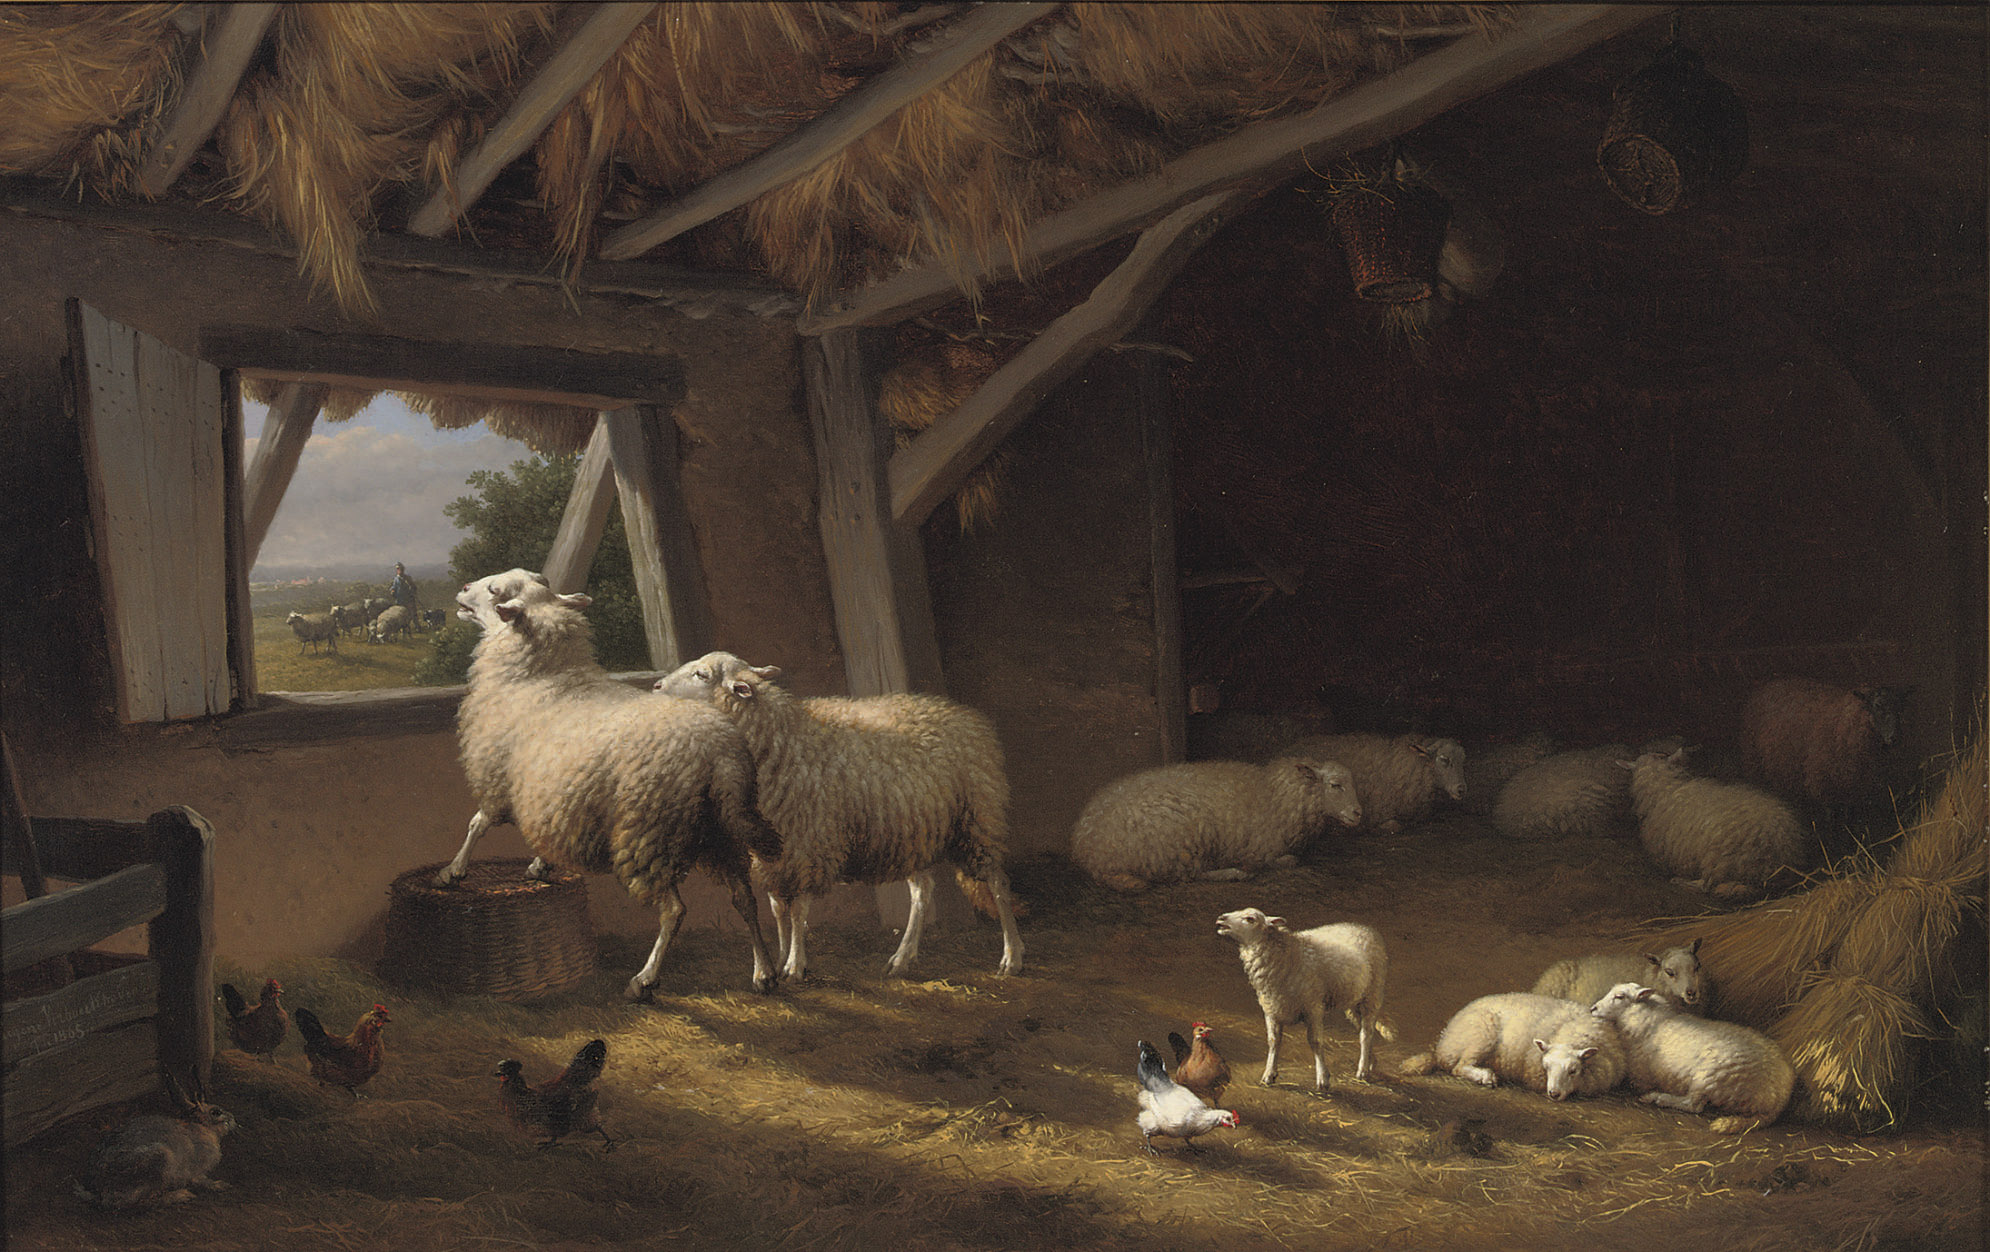 Sheep, chickens and a hare in a barn